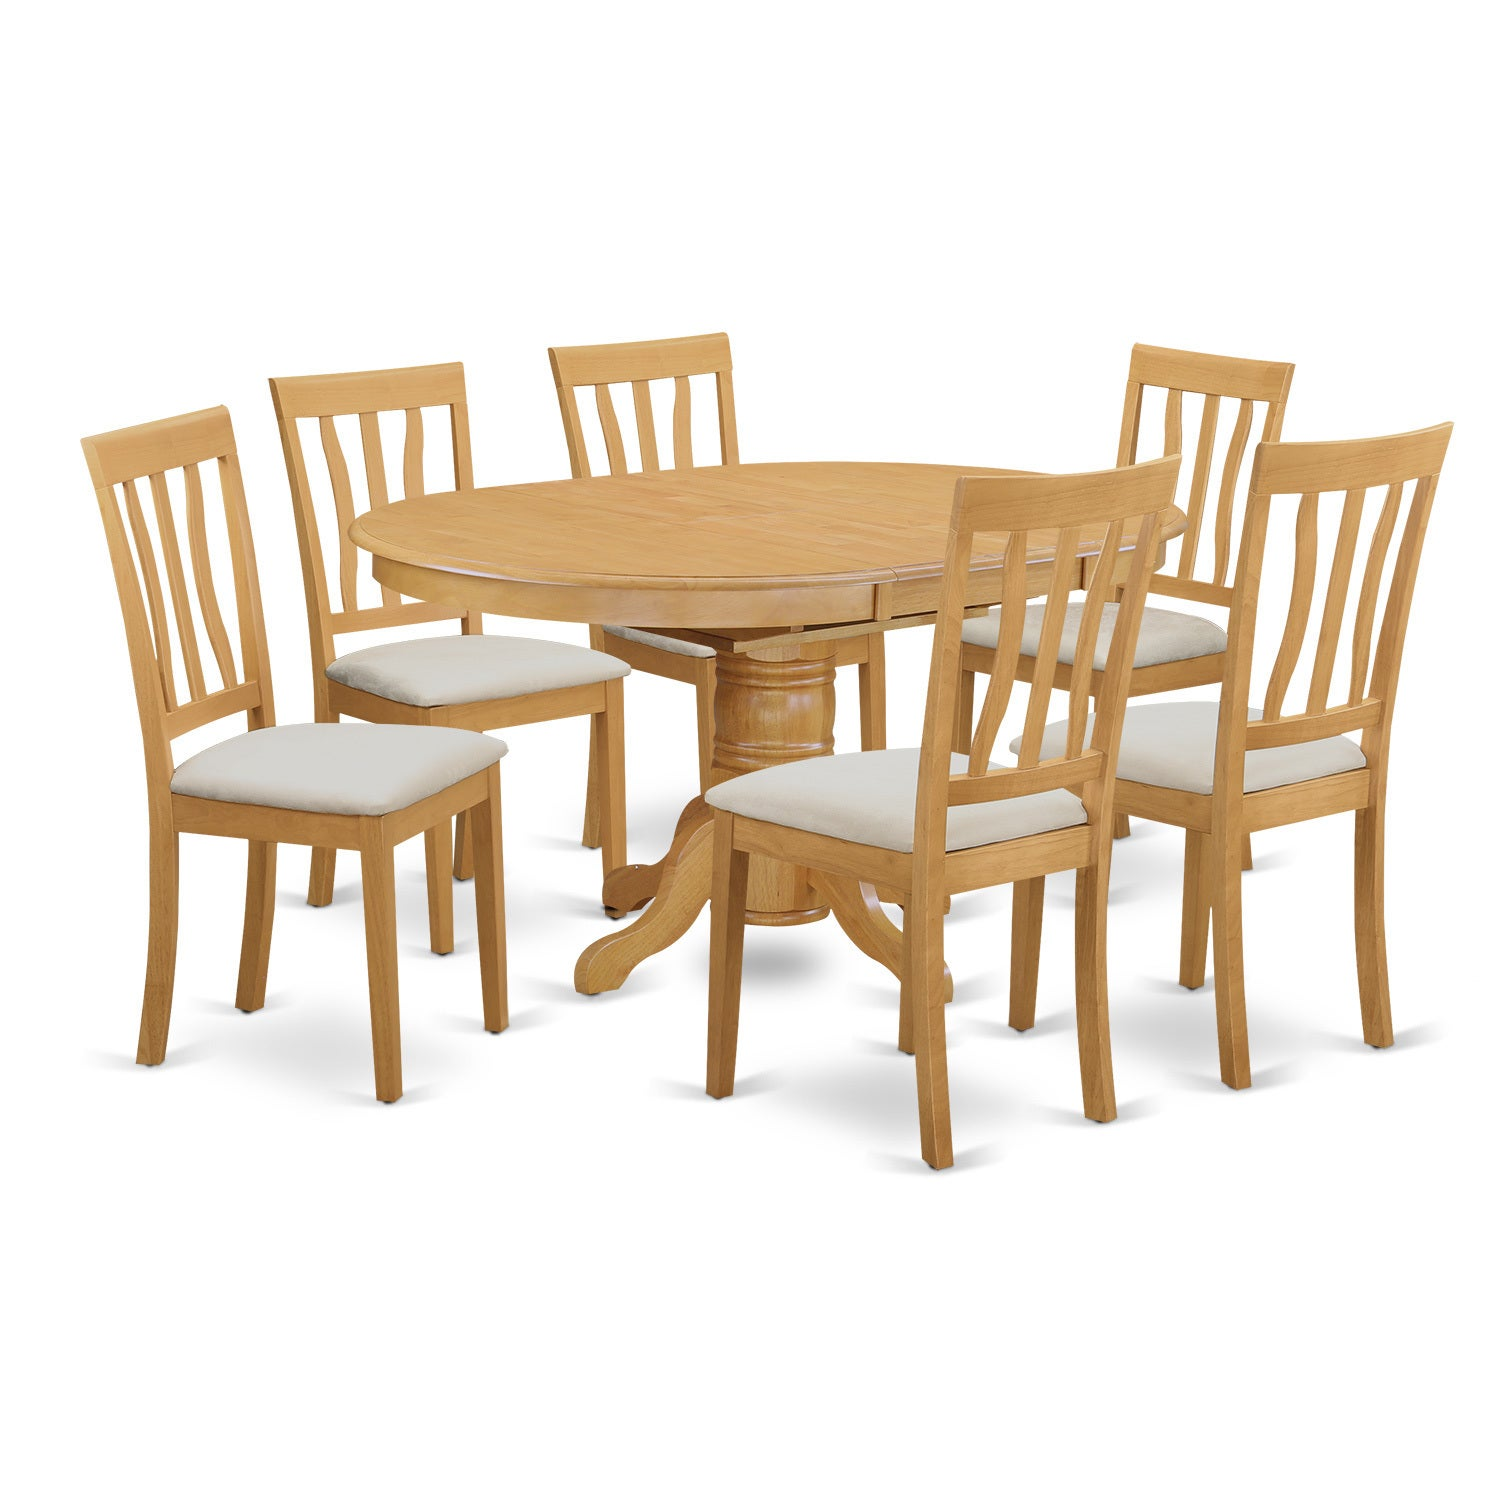 Avat-OAK-C Dining room set - Kitchen dinette table and 4 ...